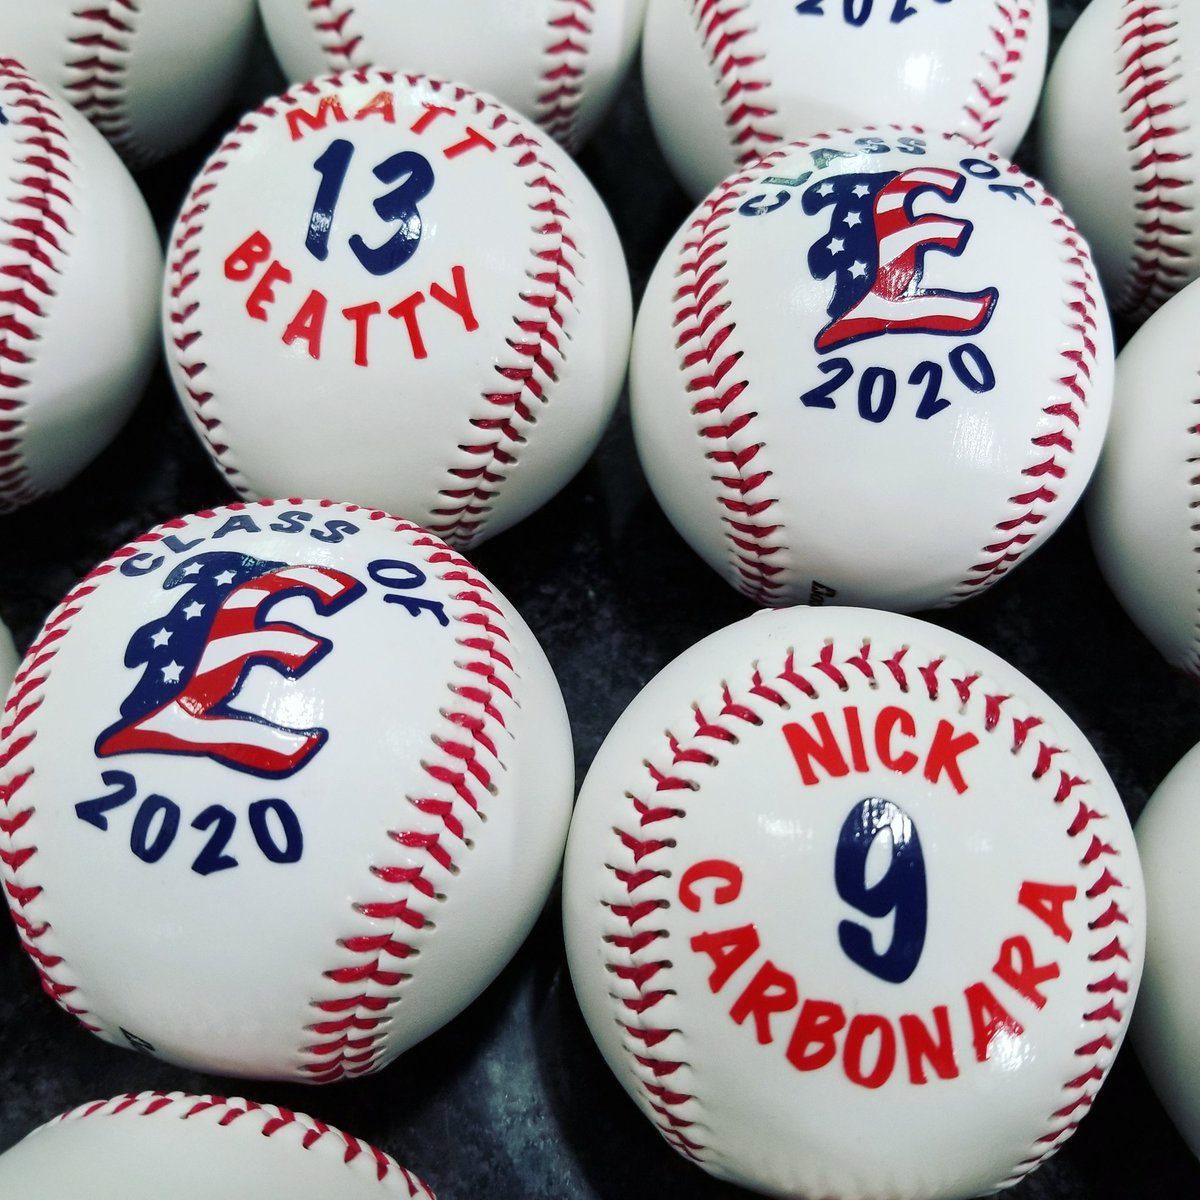 Little peak of some custom baseballs as a gift for seniors  #baseball #ClassOf2020pic.twitter.com/GSSVR5vmdU